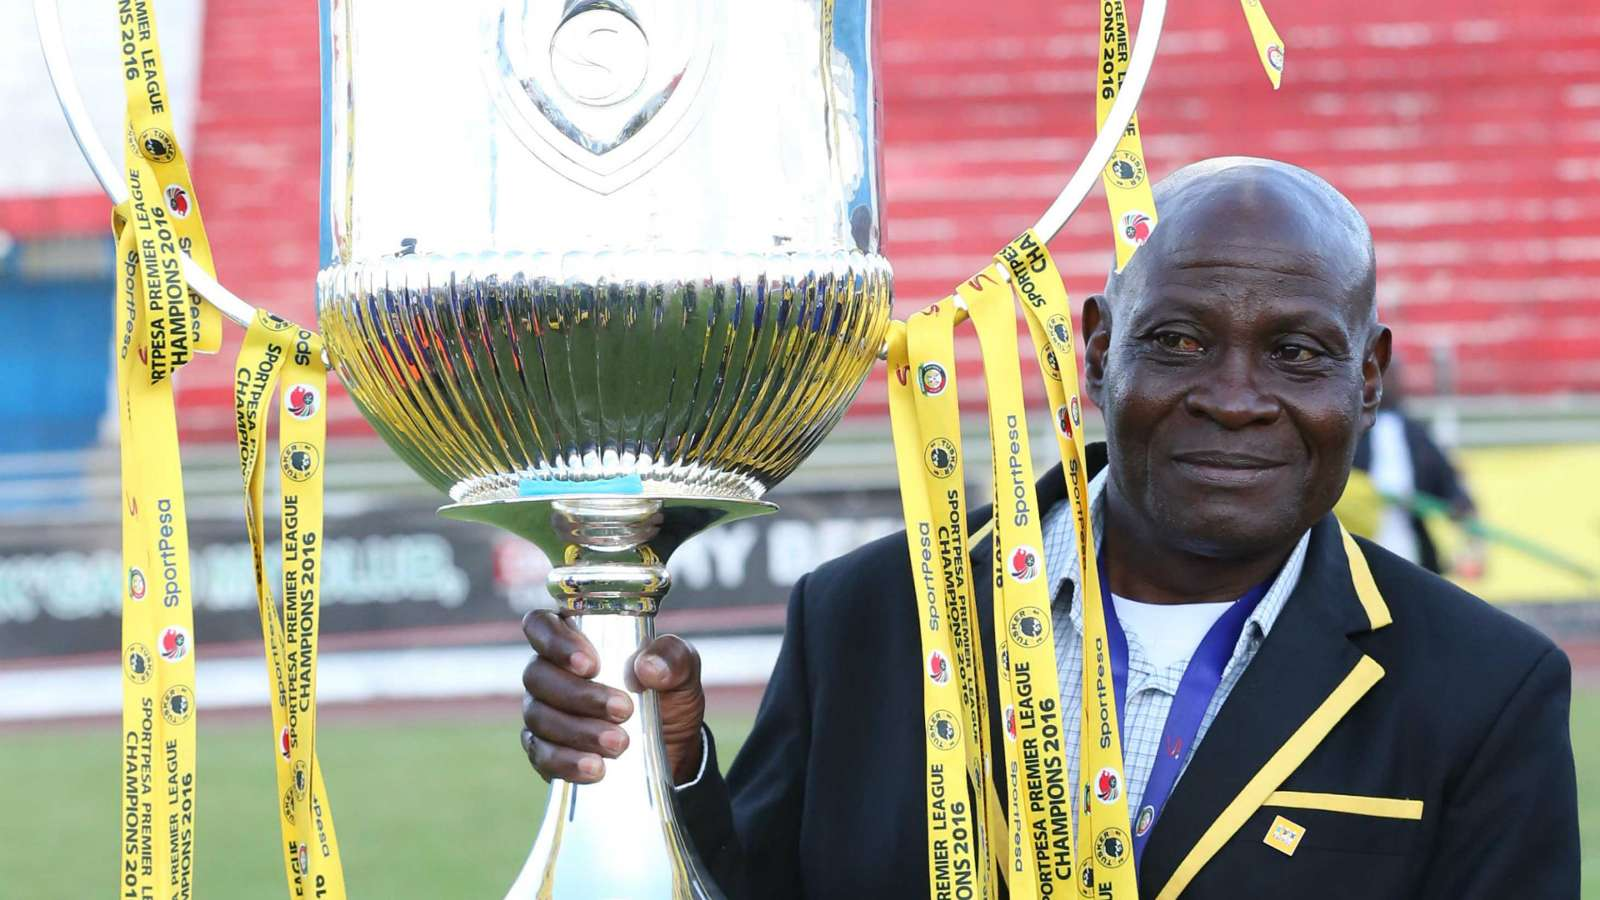 Paul Nkata, sacked from Kakamega Homeboyz after allegation of match-fixing in happier days -- 2016 -- when he steered Tusker to their ... Kenyan Premier League titles